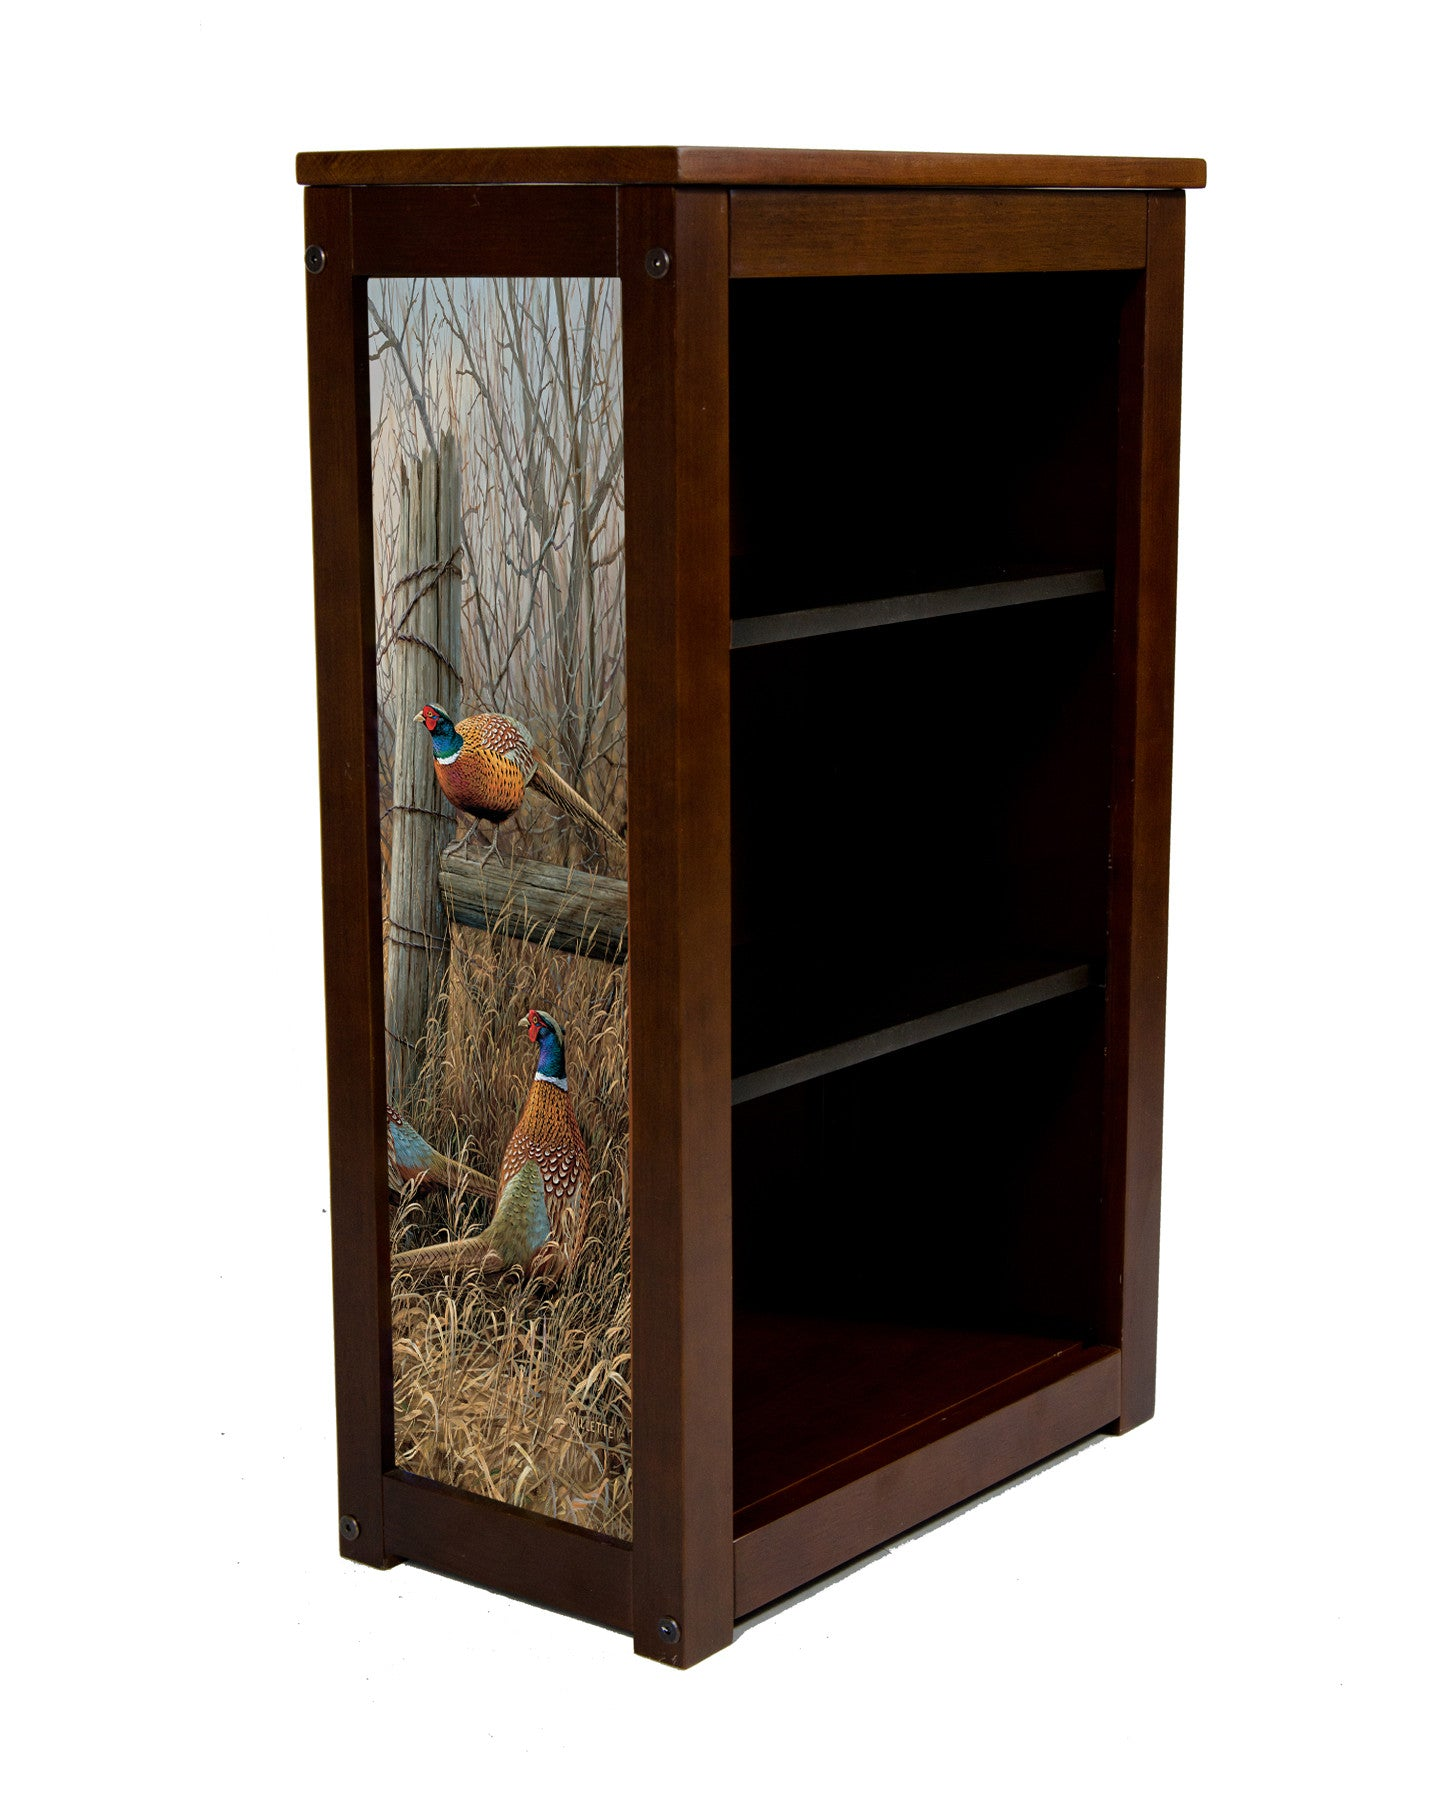 Pheasant Book Cabinet  Abandoned Fenceline - Art by Rosemary Millette